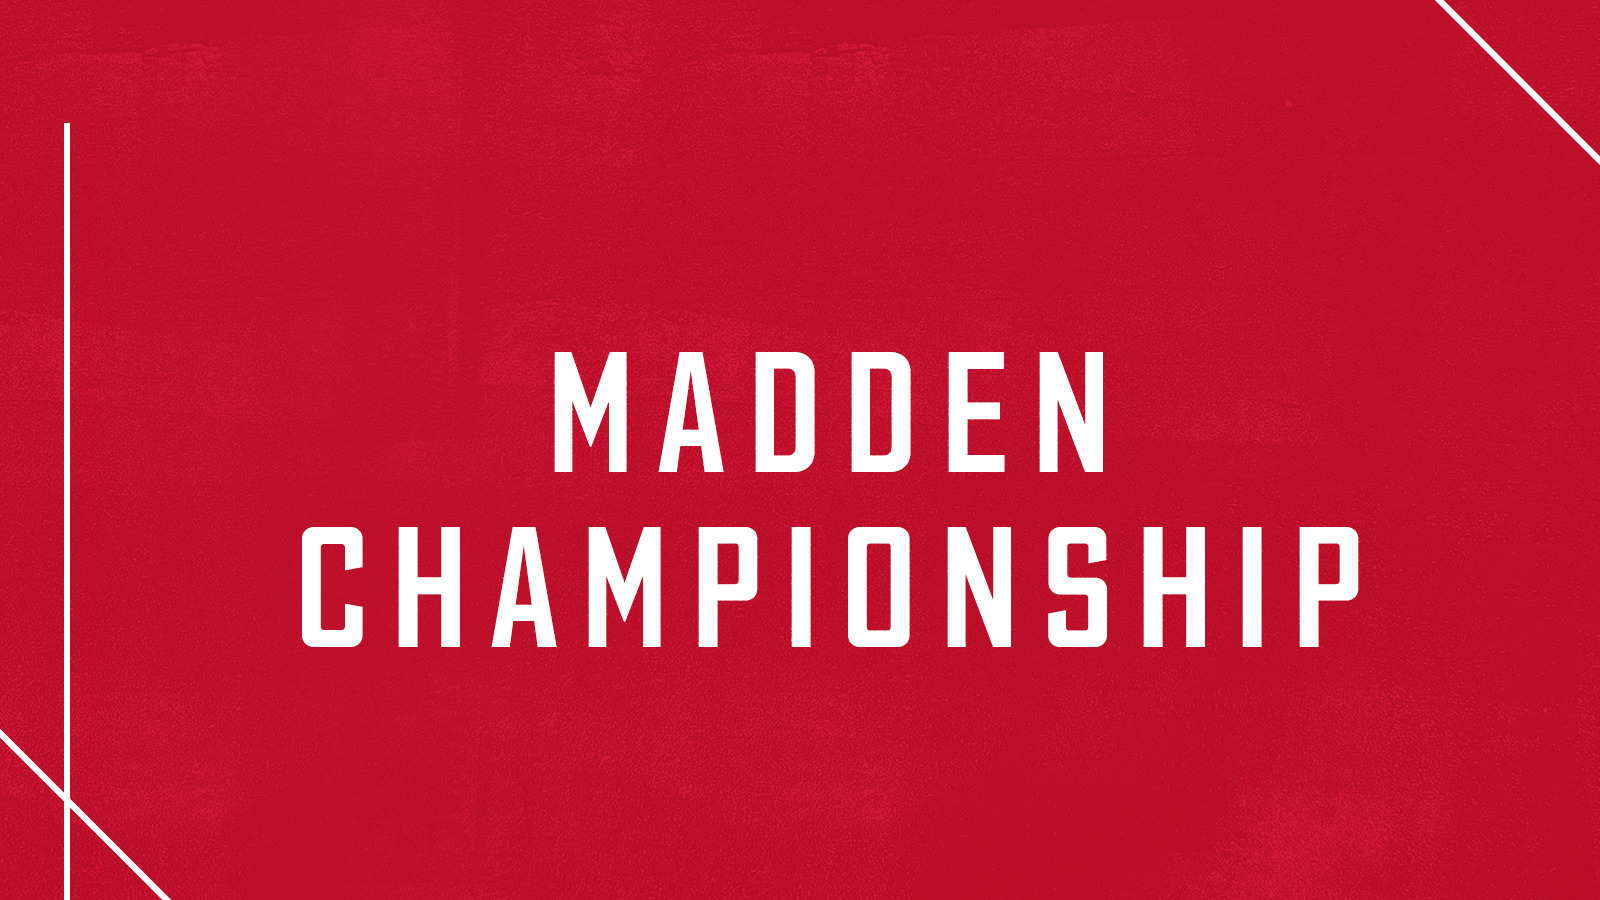 a70752ef In December 2017, the Houston Texans hosted their inaugural Madden  Championship at NRG Stadium. Fans were able to download free tickets to  attend and watch ...